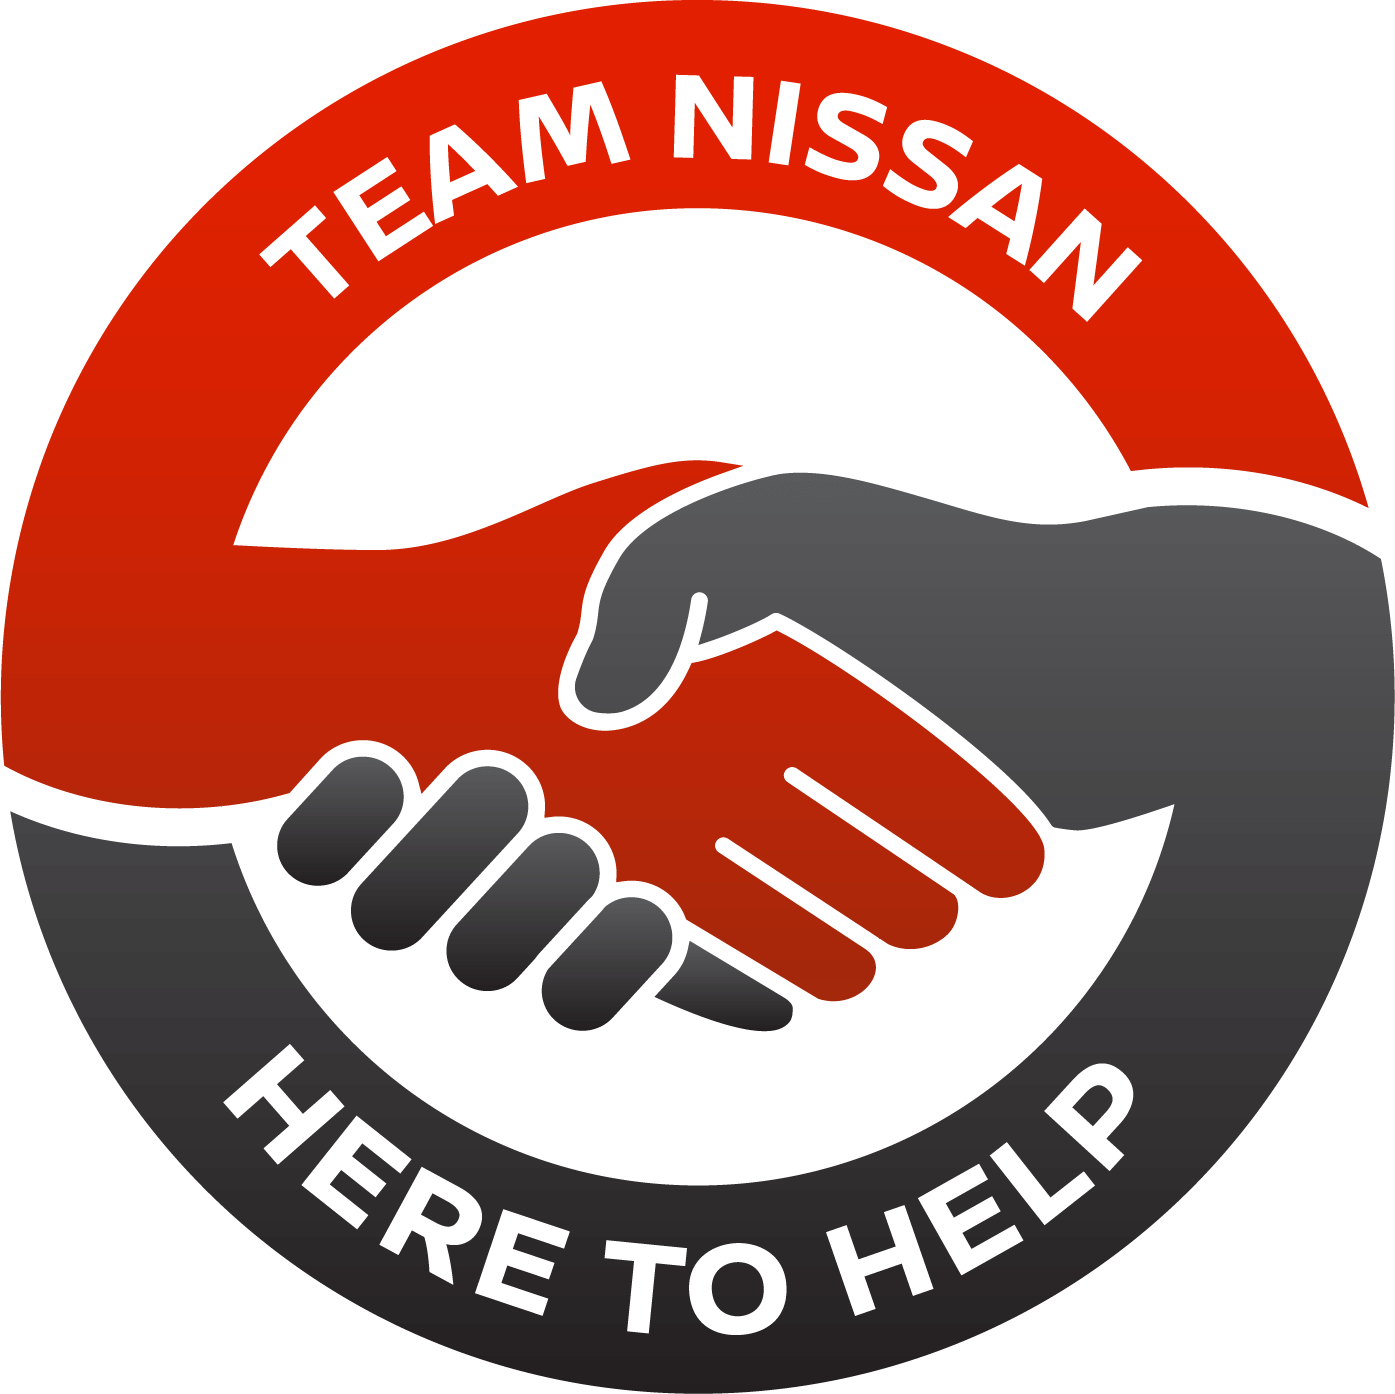 Team Nissan Here To Help